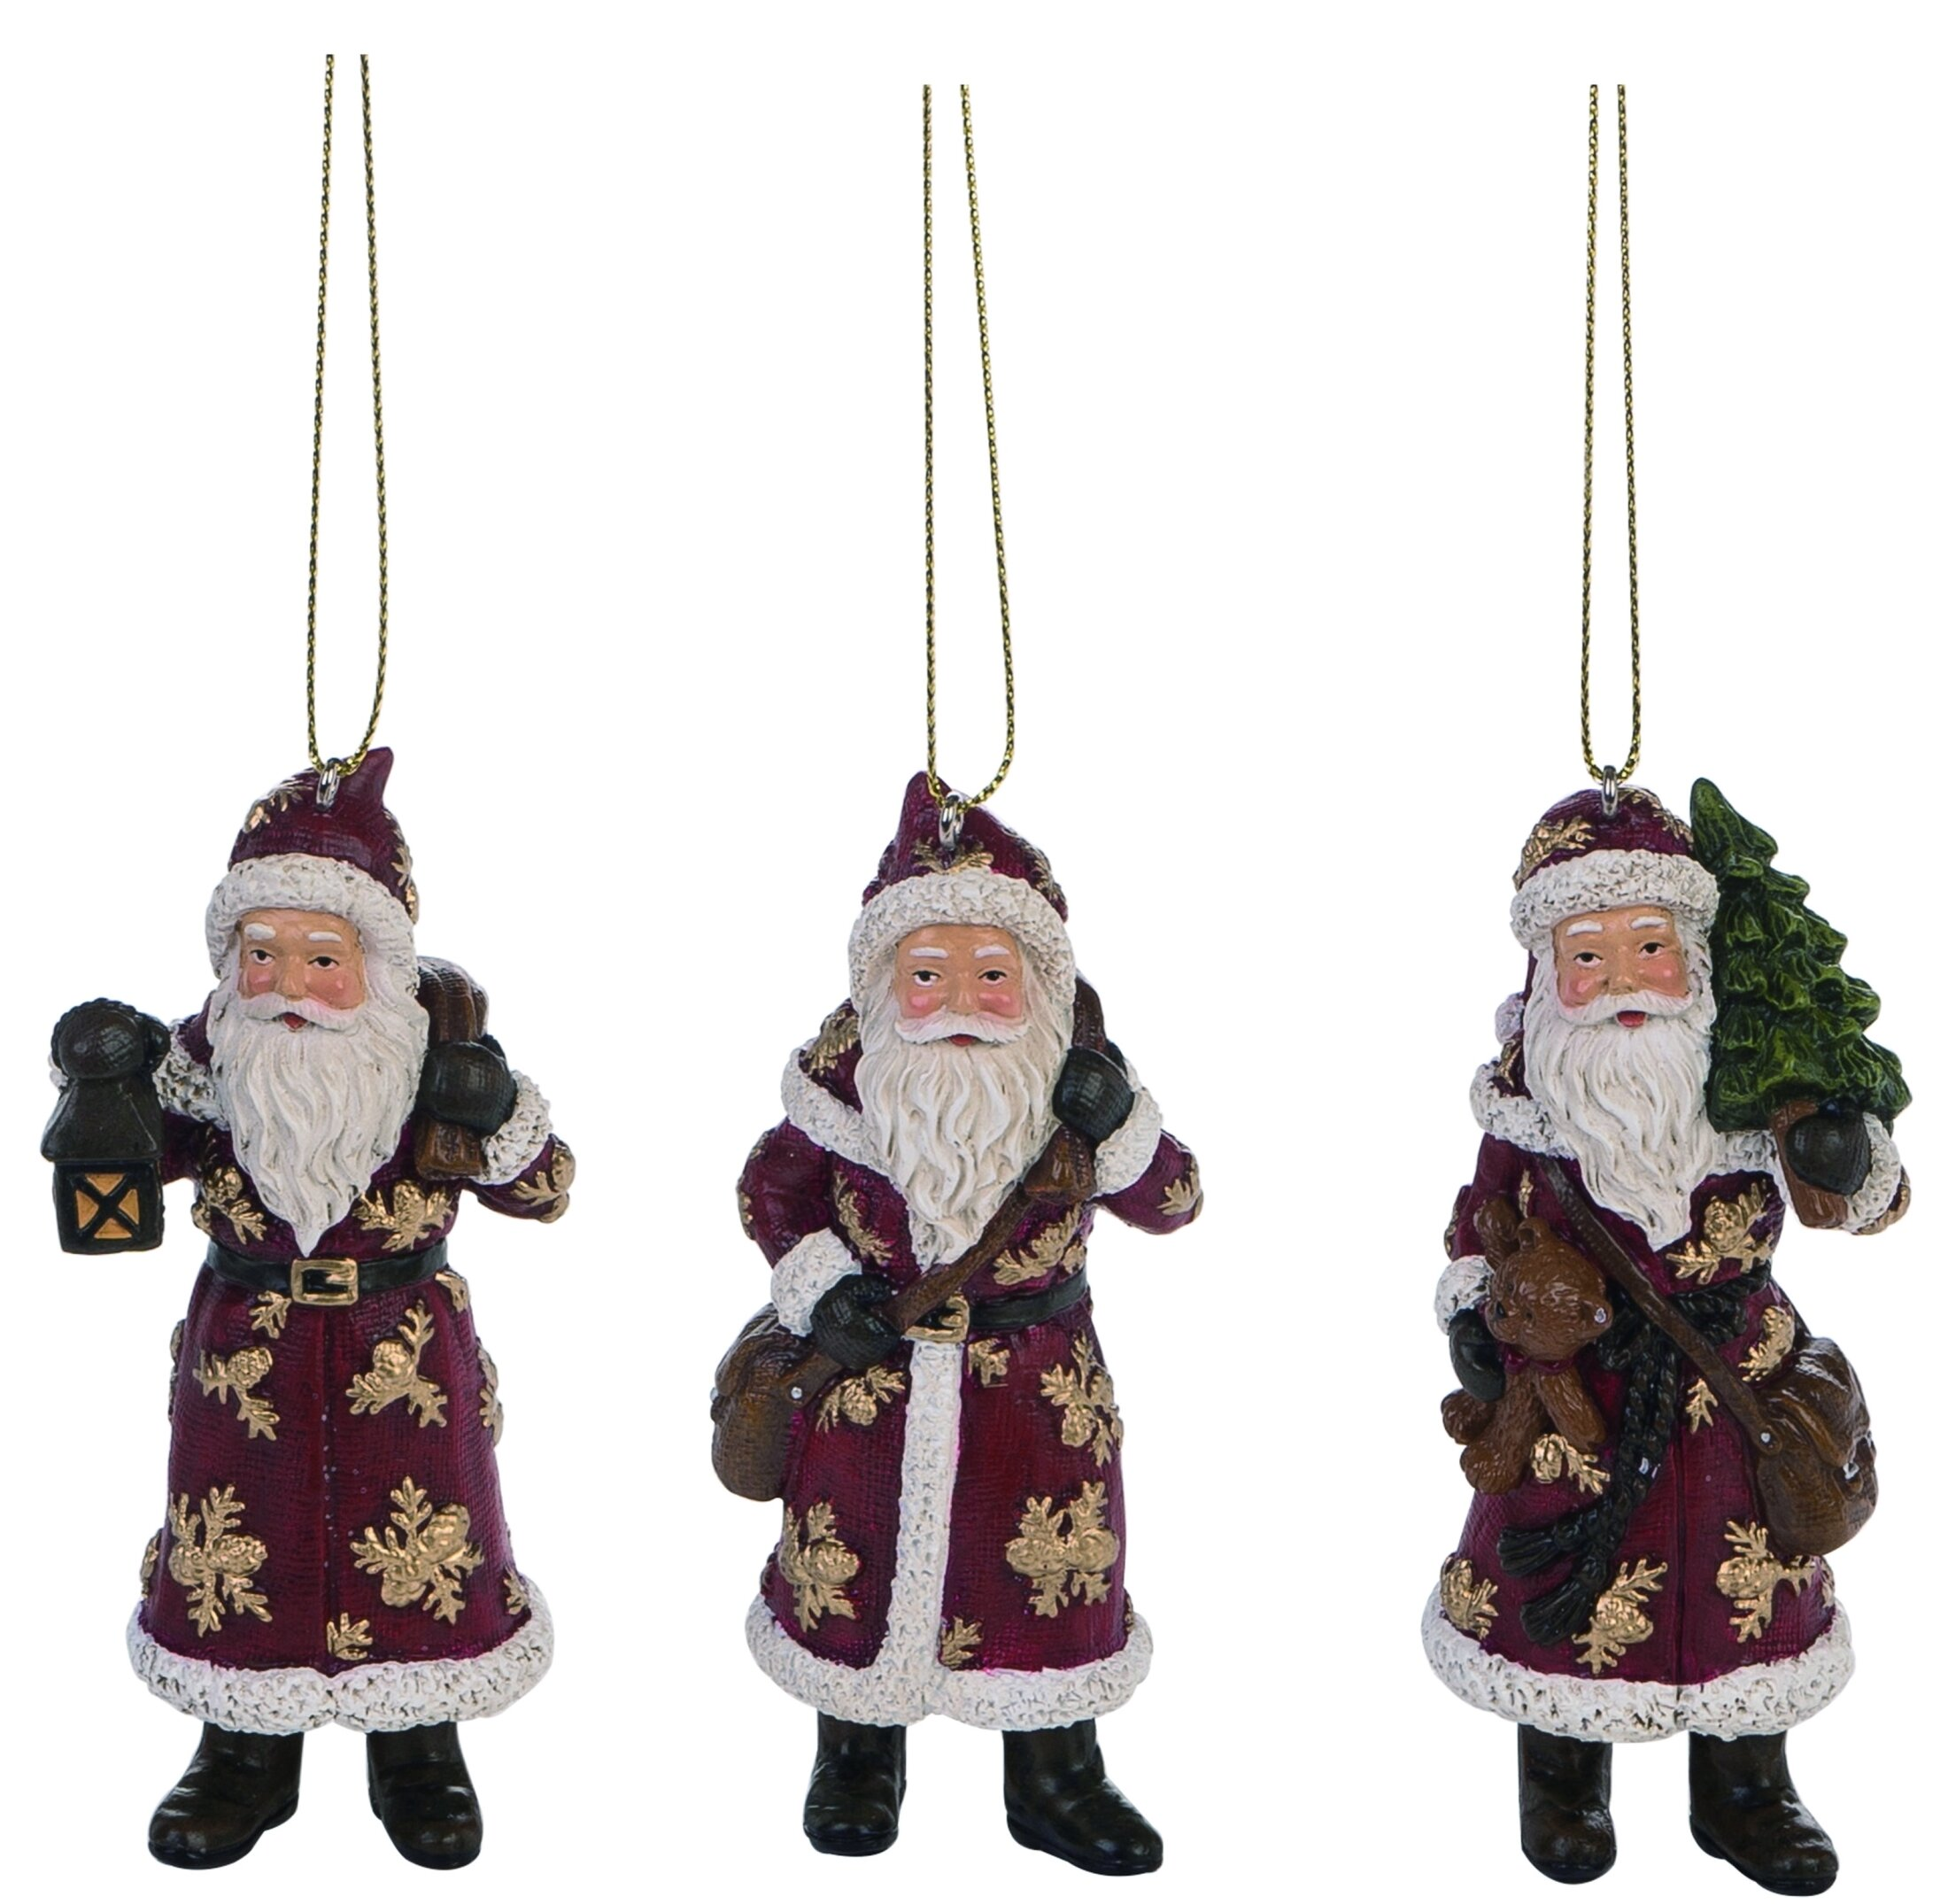 The Holiday Aisle 3 Piece Father Hanging Figurine Ornament Set Wayfair